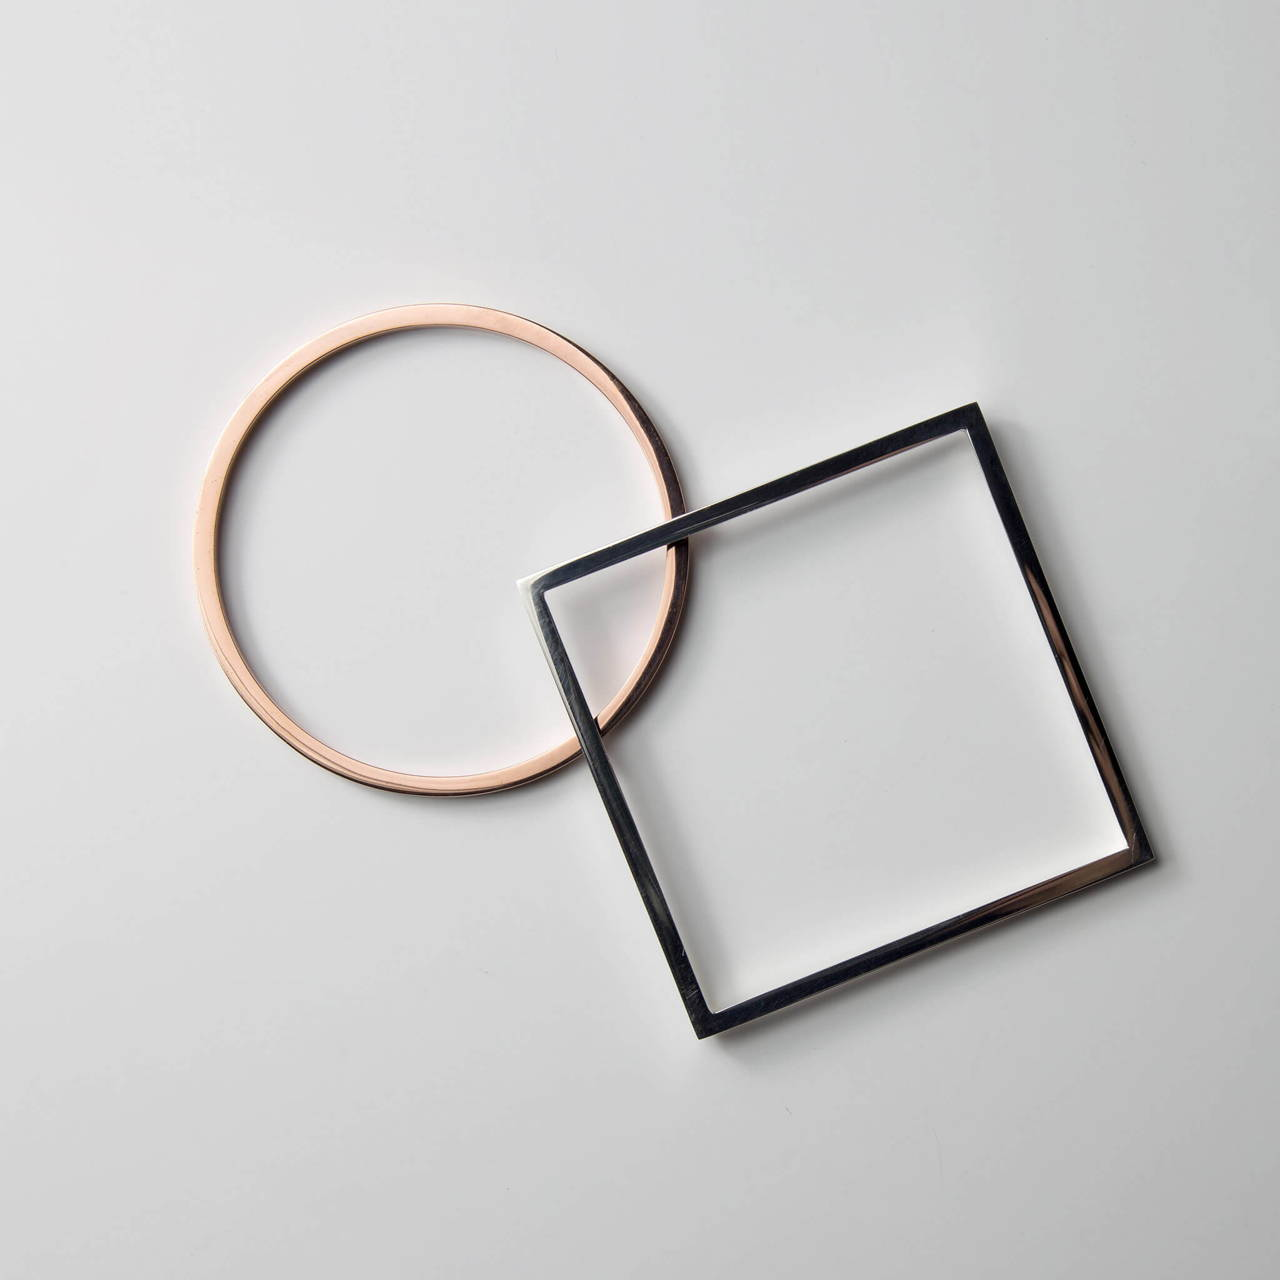 Round Bangle in Copper with Square Bangle in Silverging